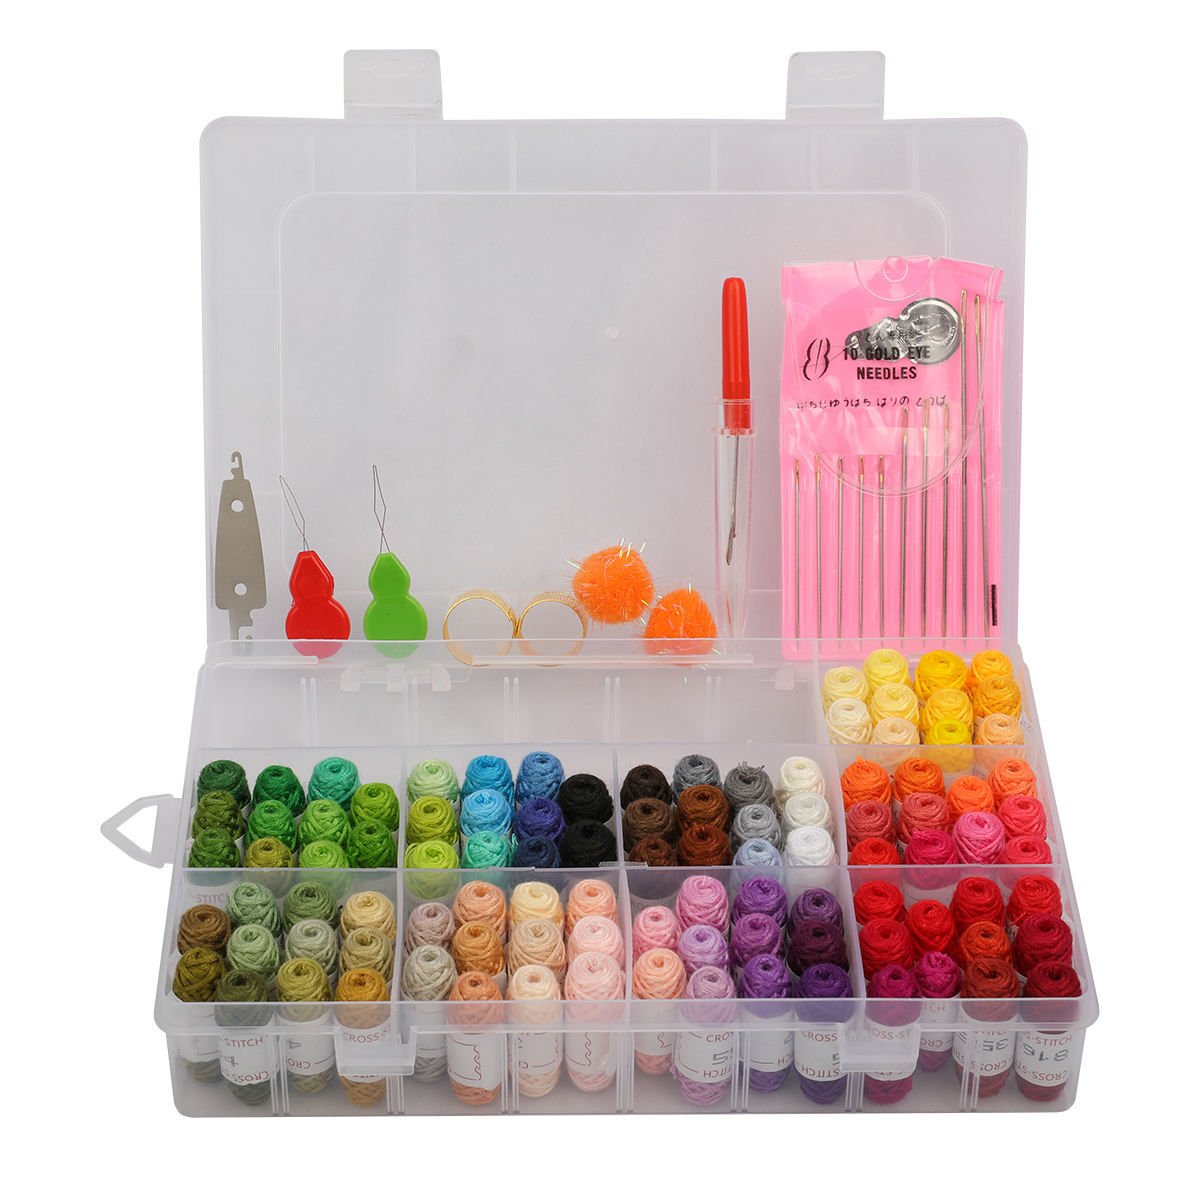 100 DMC random colors Embroidery thread Cross Stitch Thread Embroidery kit with Organizer Storage Box